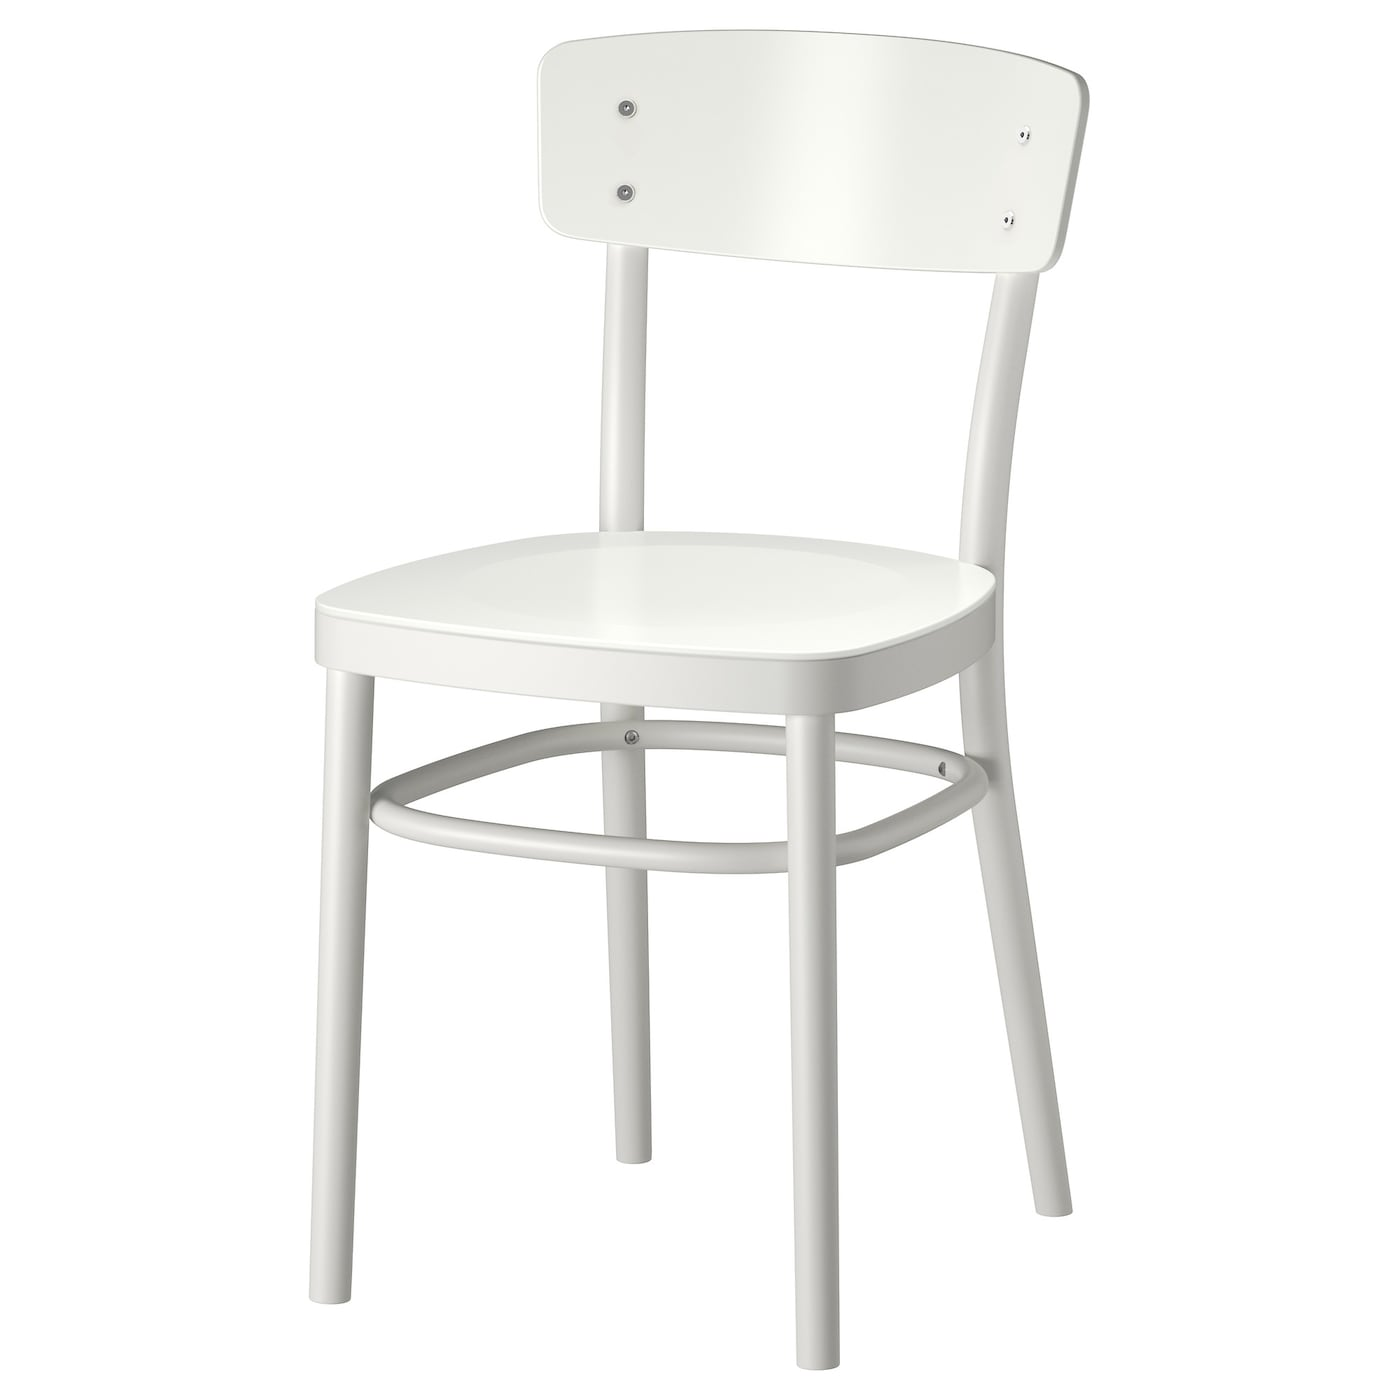 Dining chairs kitchen chairs ikea for Chaise 65 cm ikea